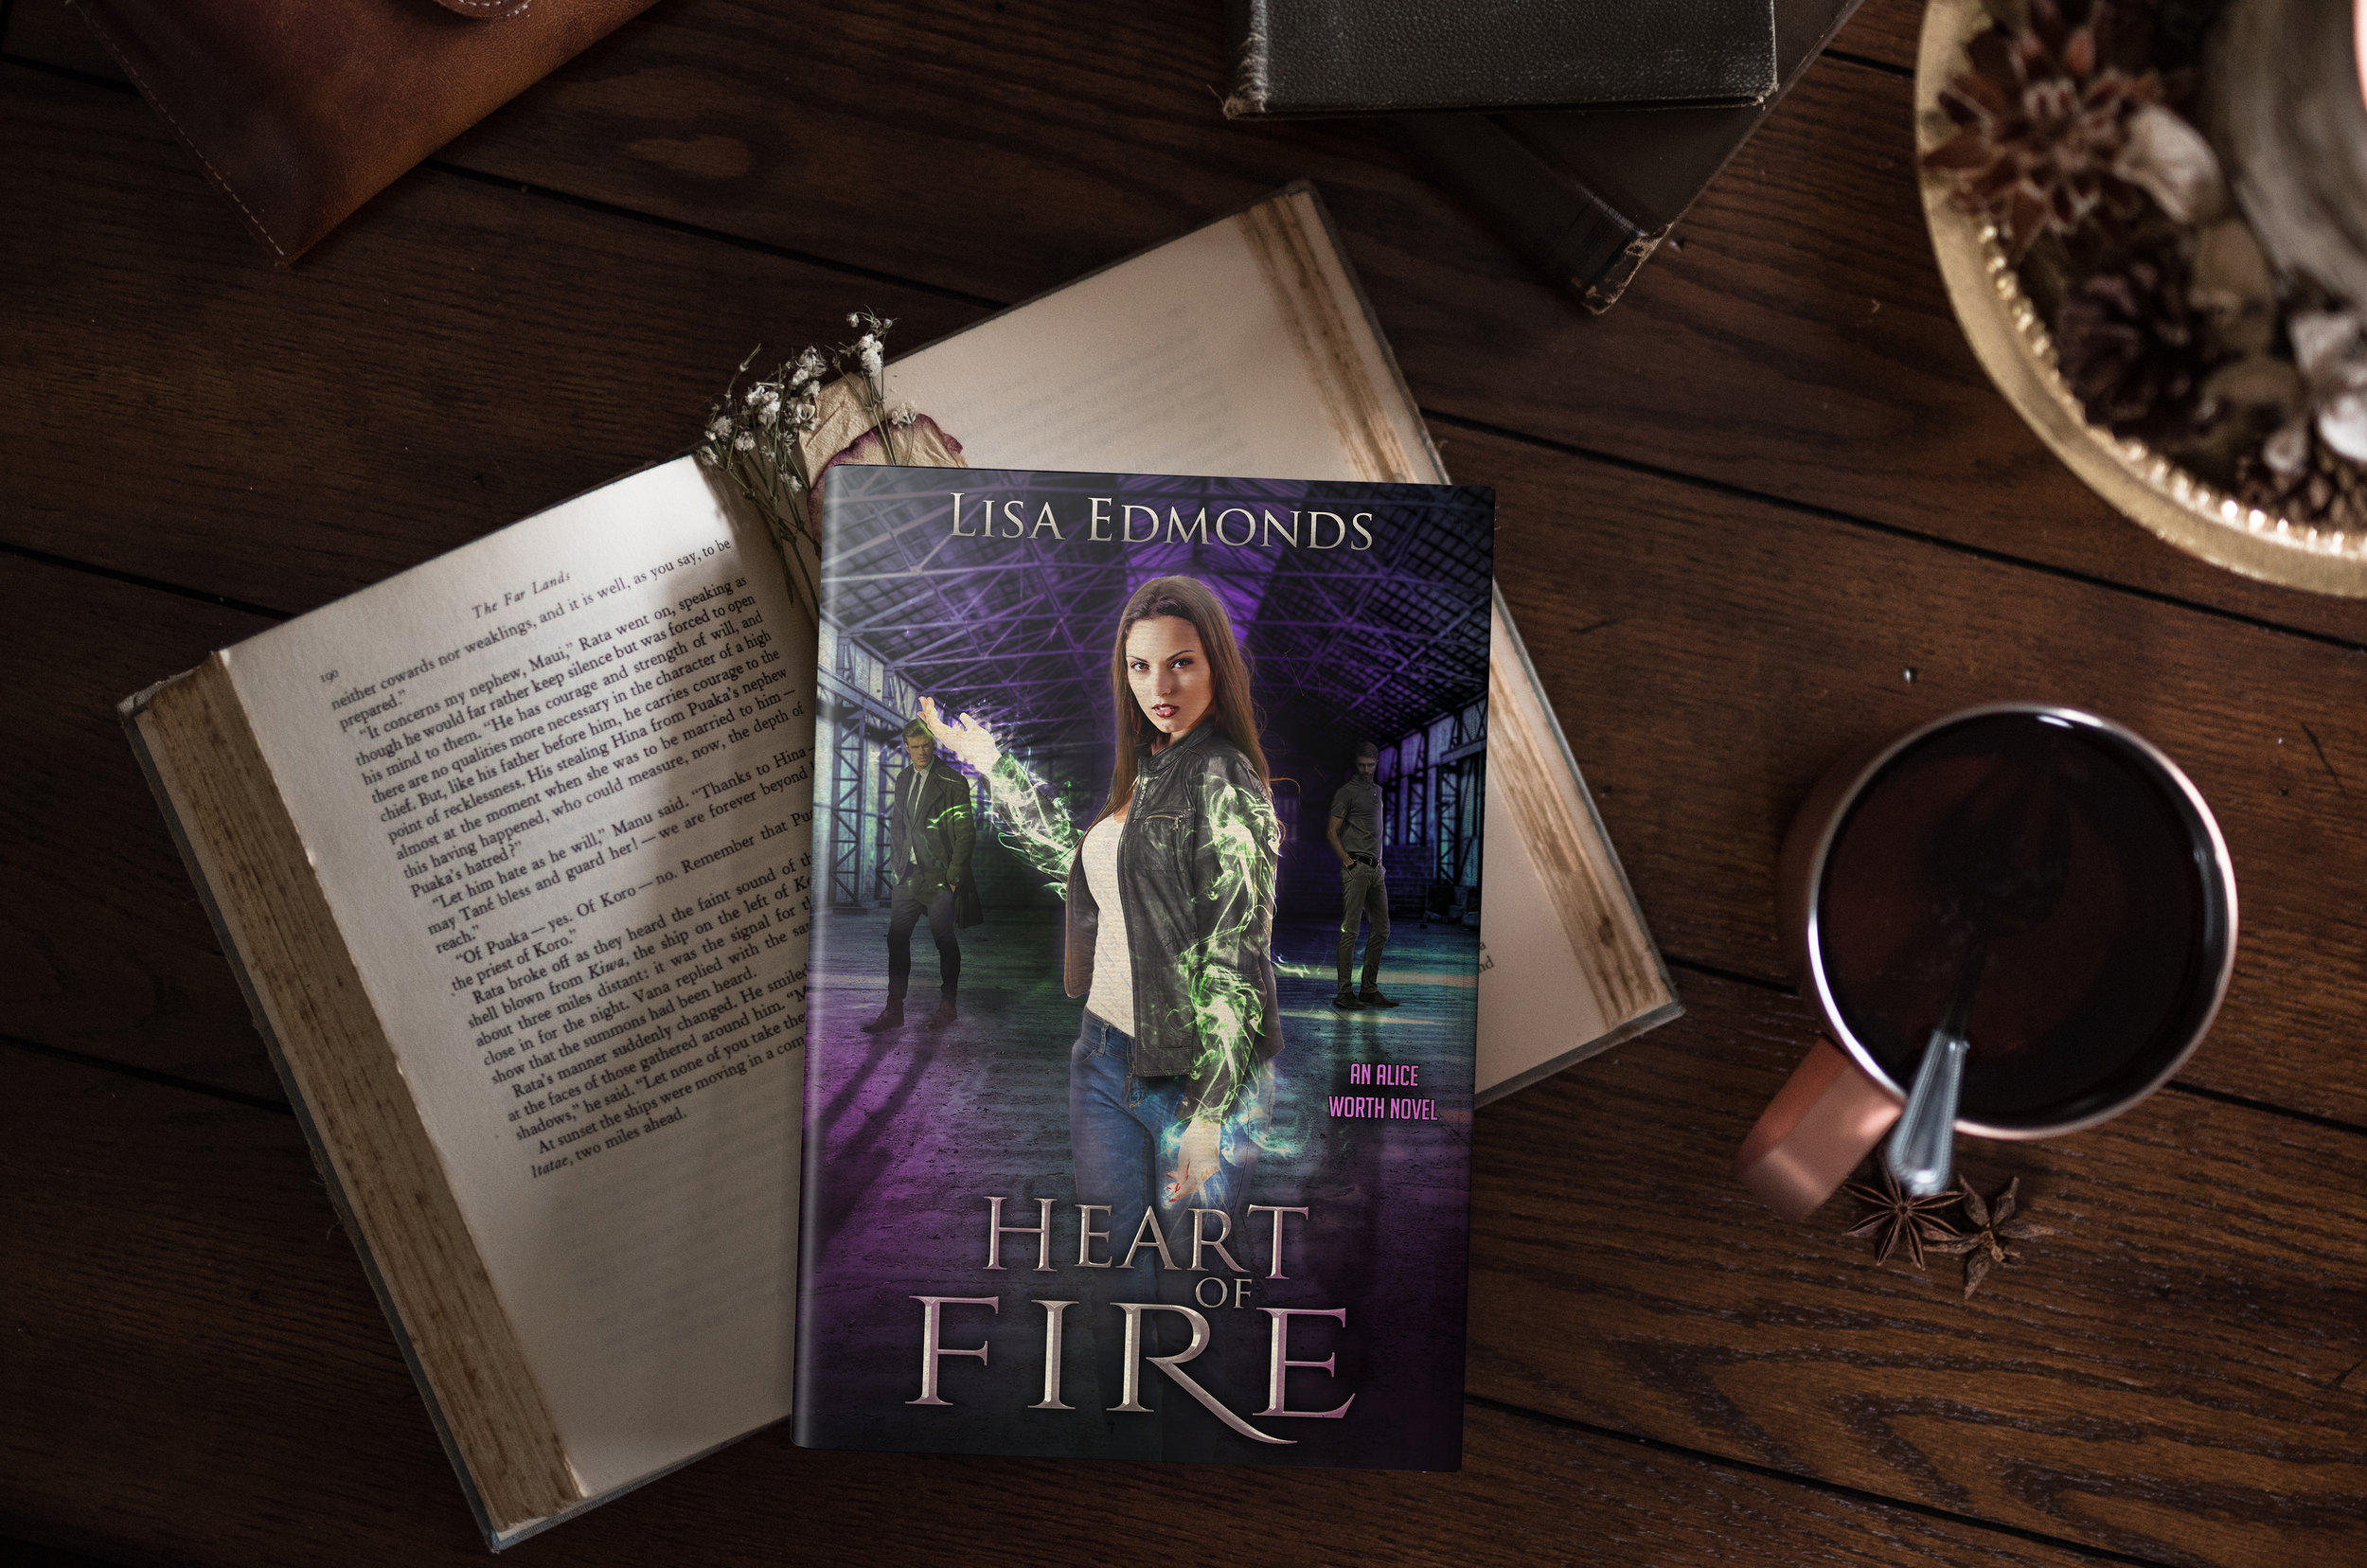 Download 3 FREE chapters of Heart of Fire! - Click the link below to download your free sample in either Kindle or epub (Nook, etc.) format